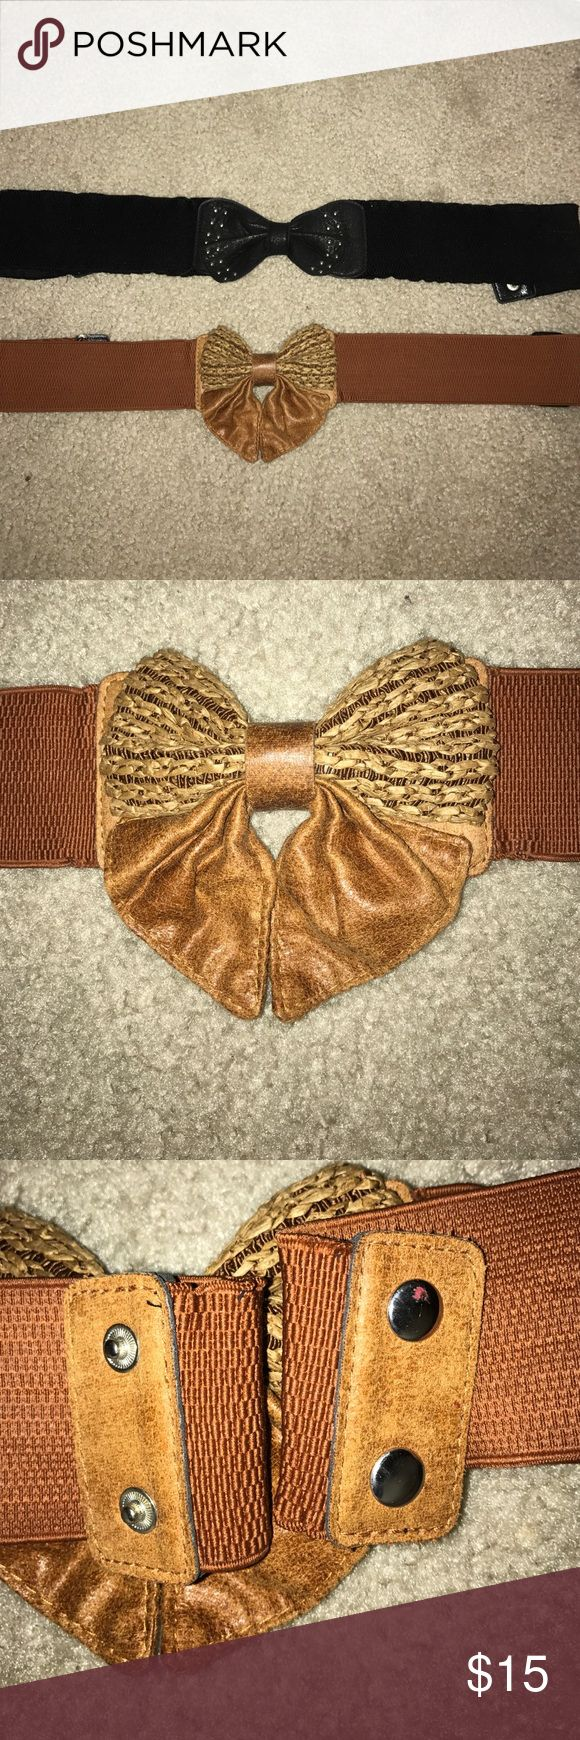 Black and Tan belts Selling together. Black bow belt with sequins on bow and tan belt with crotchet bow. Both have 2 snaps and are in excellent condition. Charlotte Russe Other